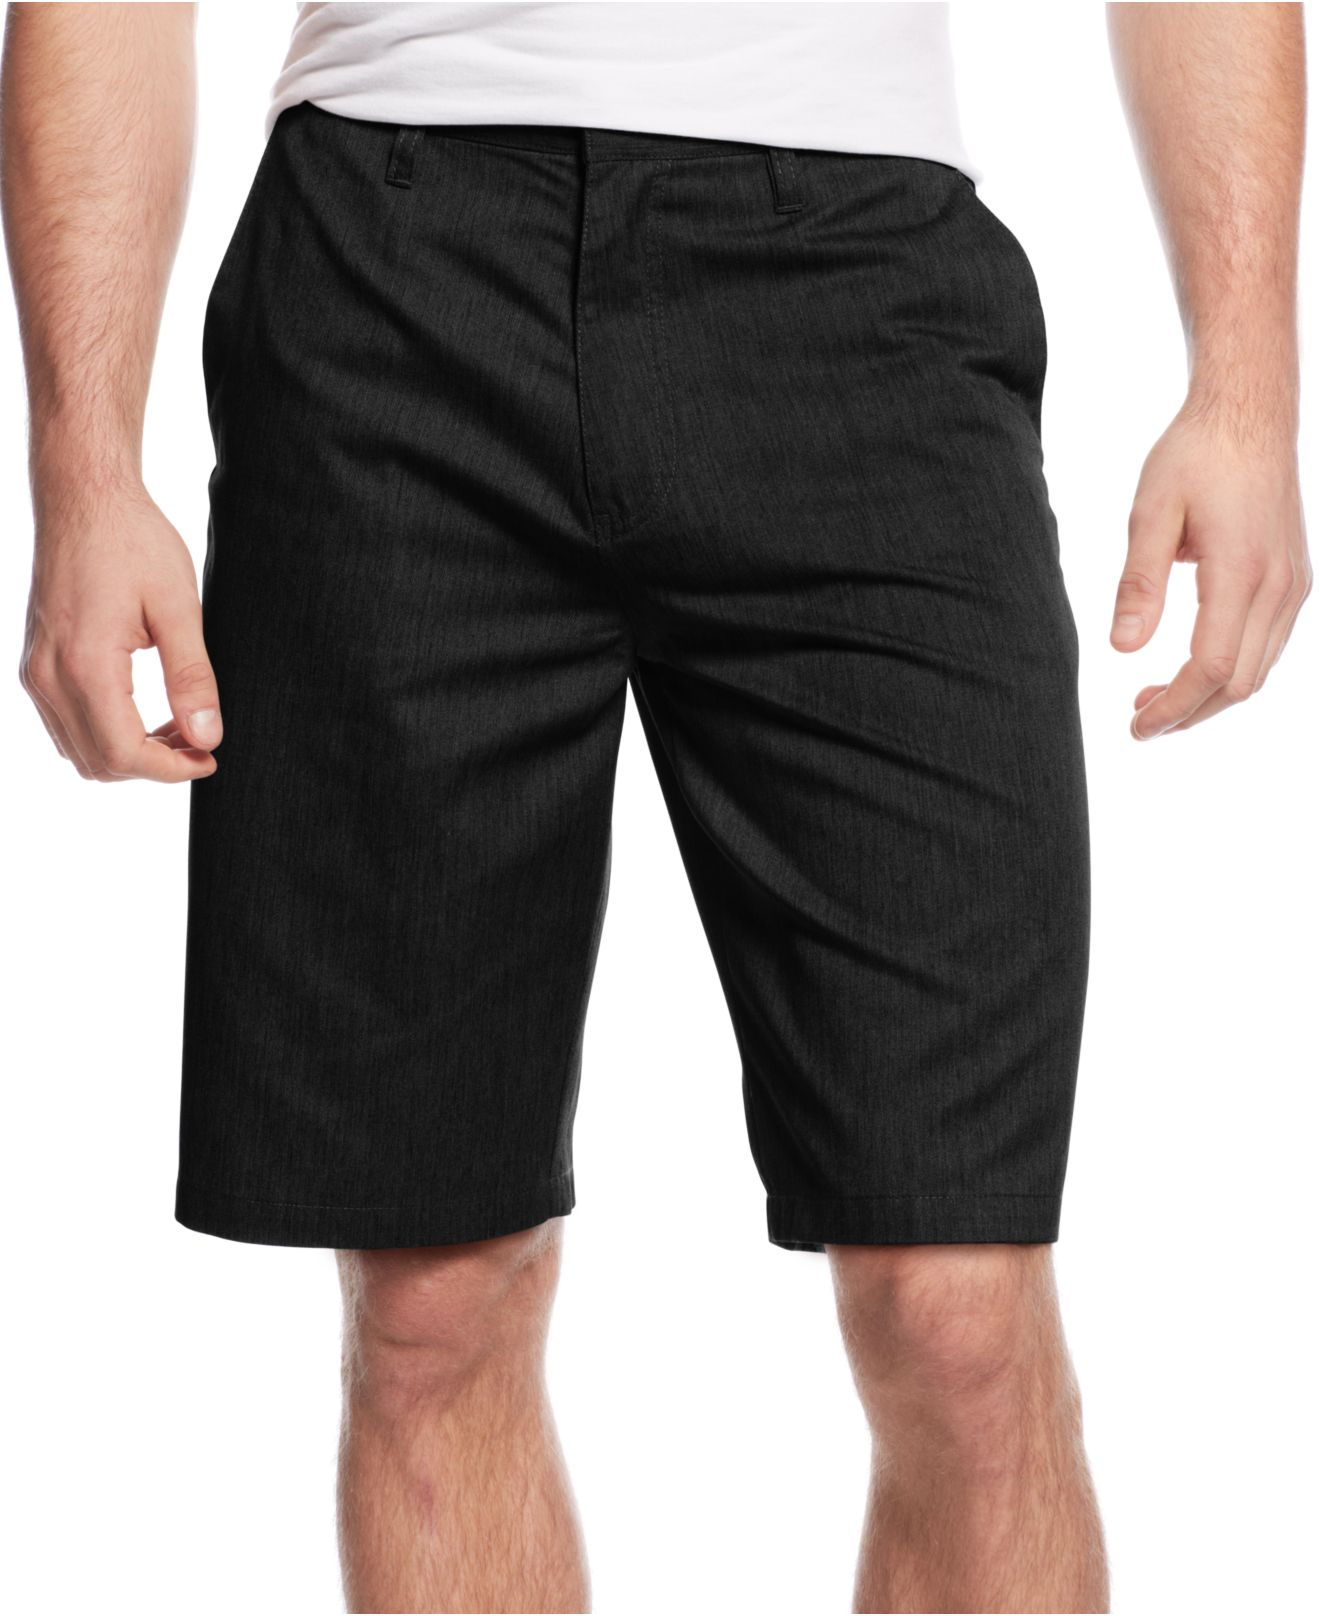 Shop Mens Shorts with SurfStitch. We stock a huge range of brands including Billabong & Rip Curl. Mens Cargo, Denim, Beach & Chino Shorts. Shop Shorts Refine ( Items) Type Basic Active Beach Shorts Cargo Chino Corduroy Denim Everyday RHYTHM 1 Black Label Mens Beach Short. $ More Colours Available. RUSTY 1 Jiggy Jigs 2 Mens.